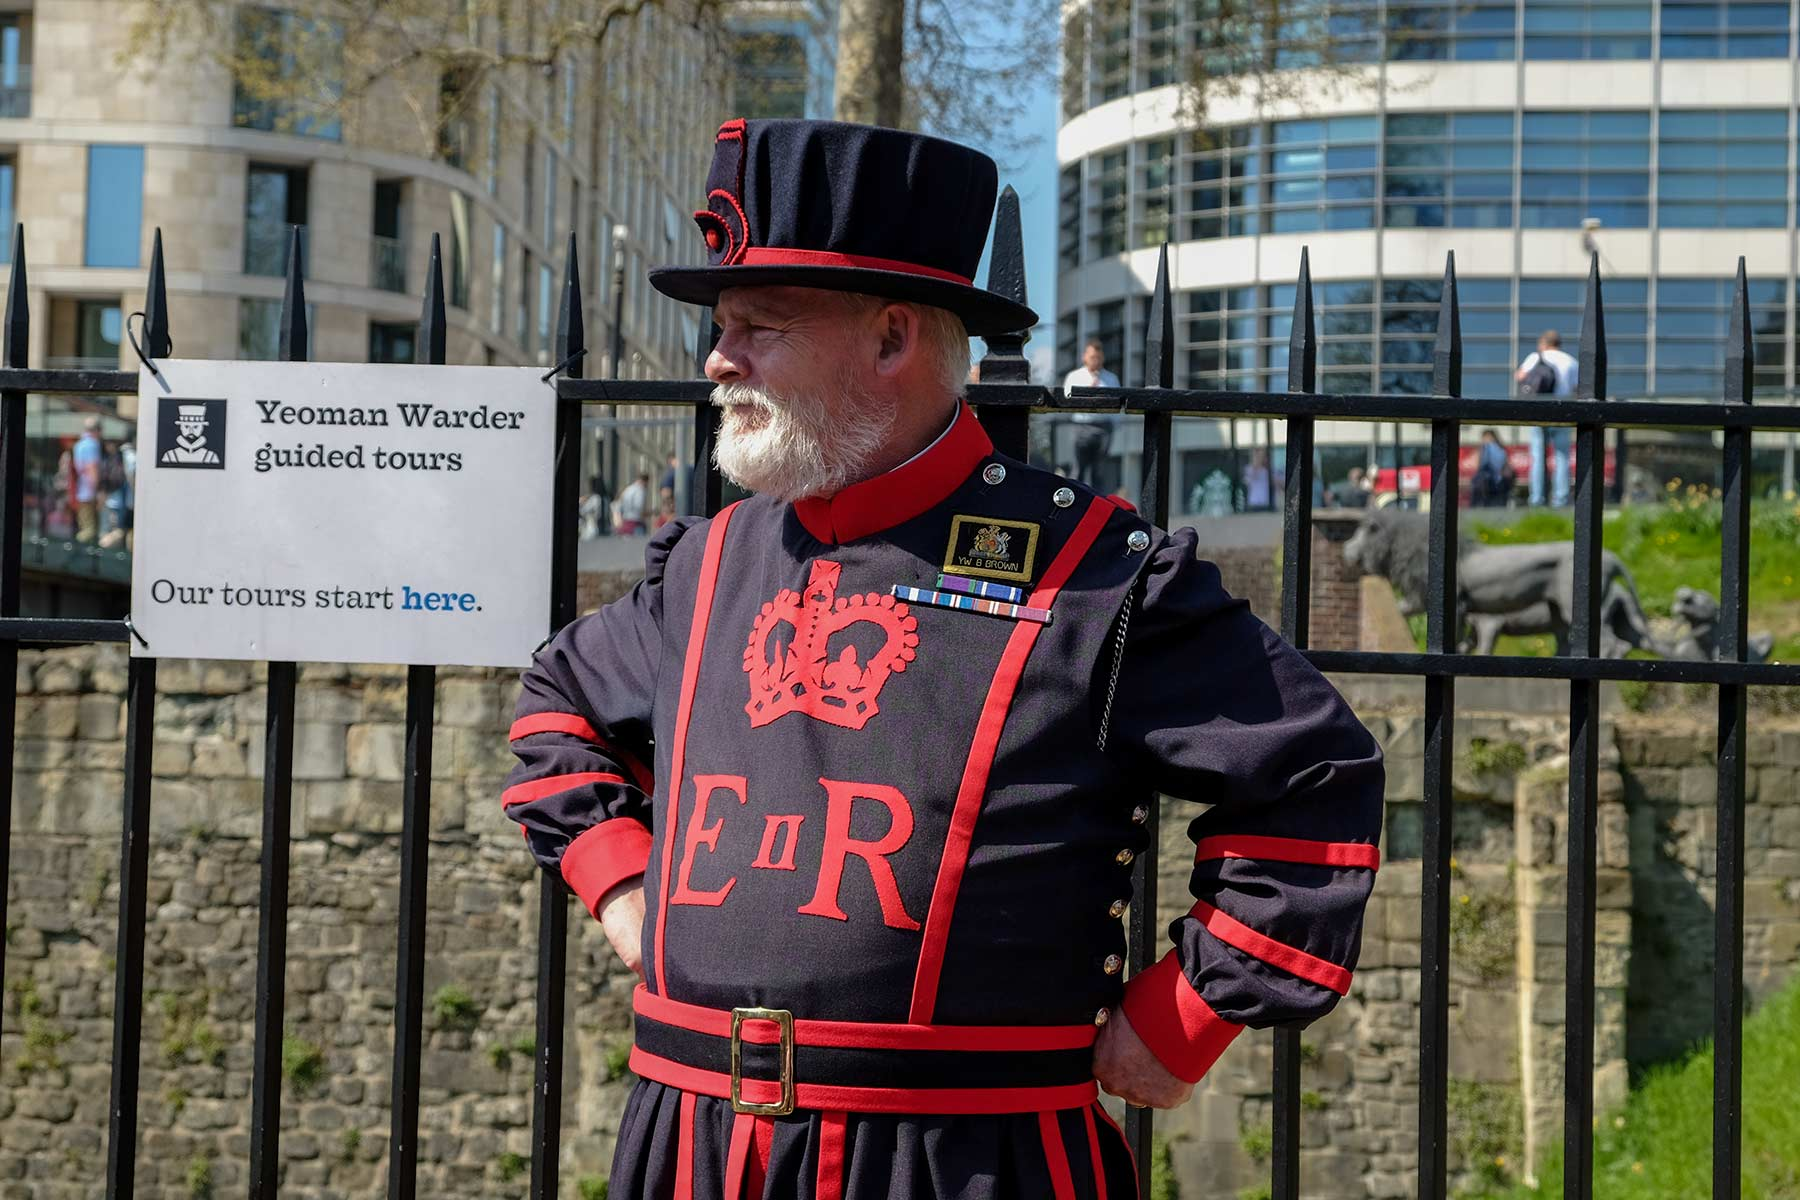 Yeoman Warder Tower of London in London, England